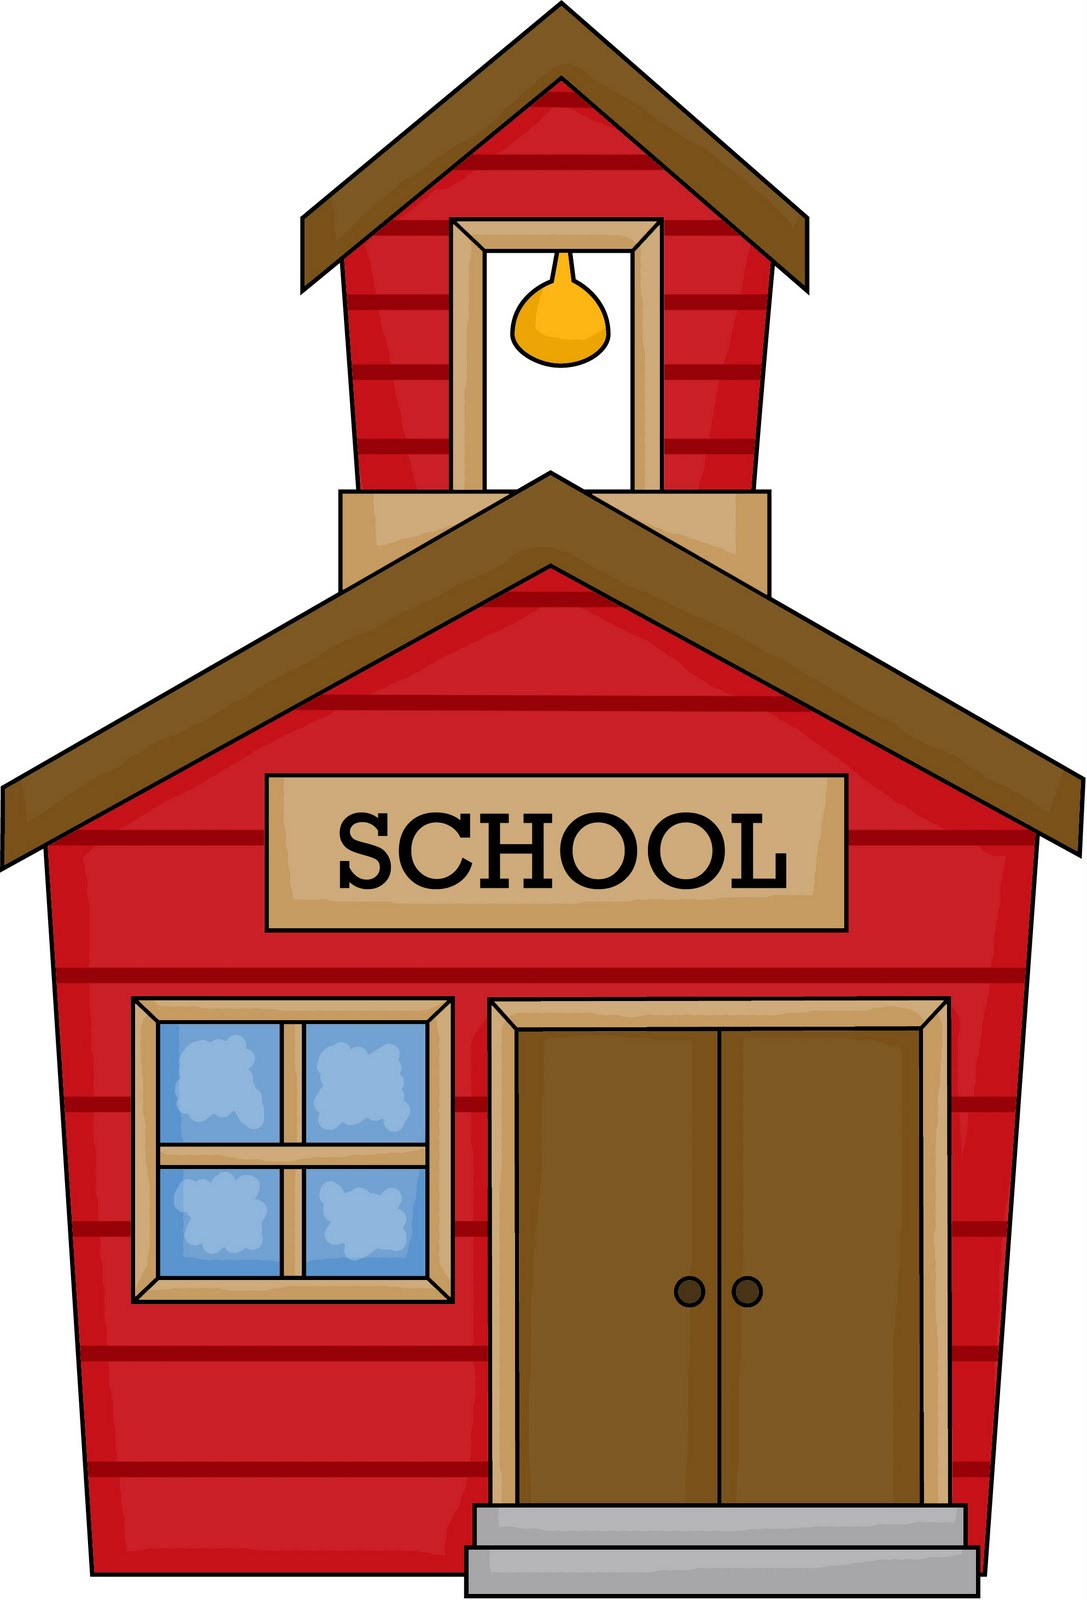 clipart of school. school house images